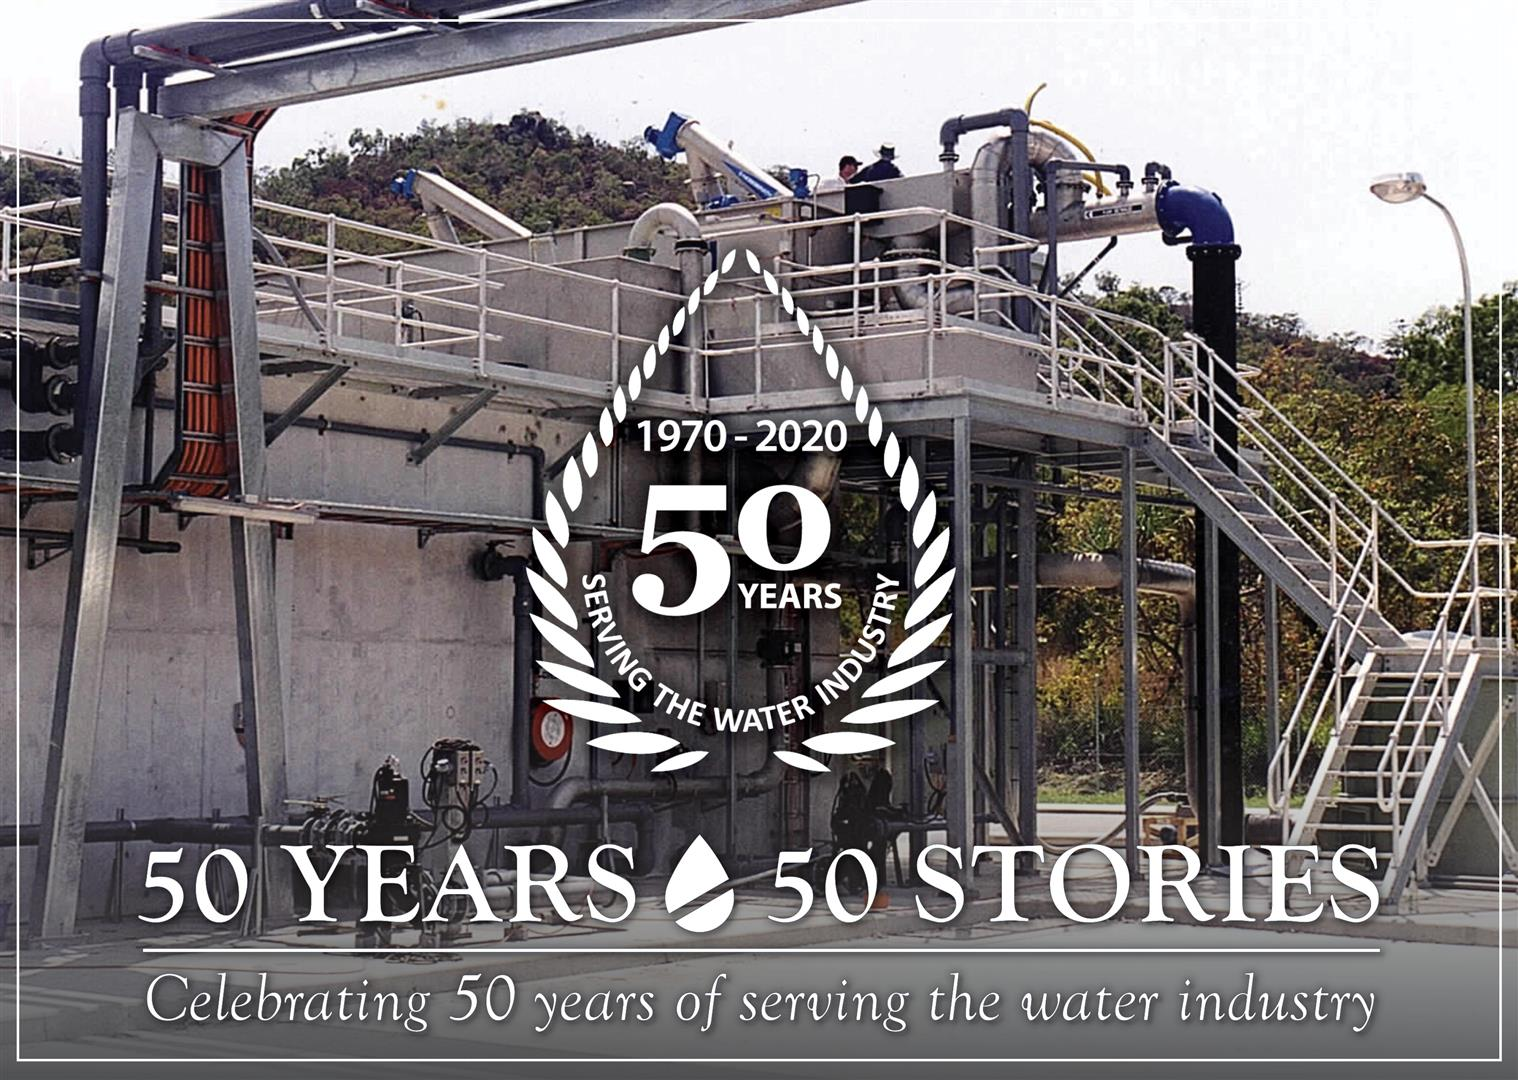 50 Years - 50 Stories: Picnic Bay Membrane Bioreactor STP - A first for Picnic Bay (and Australia!)